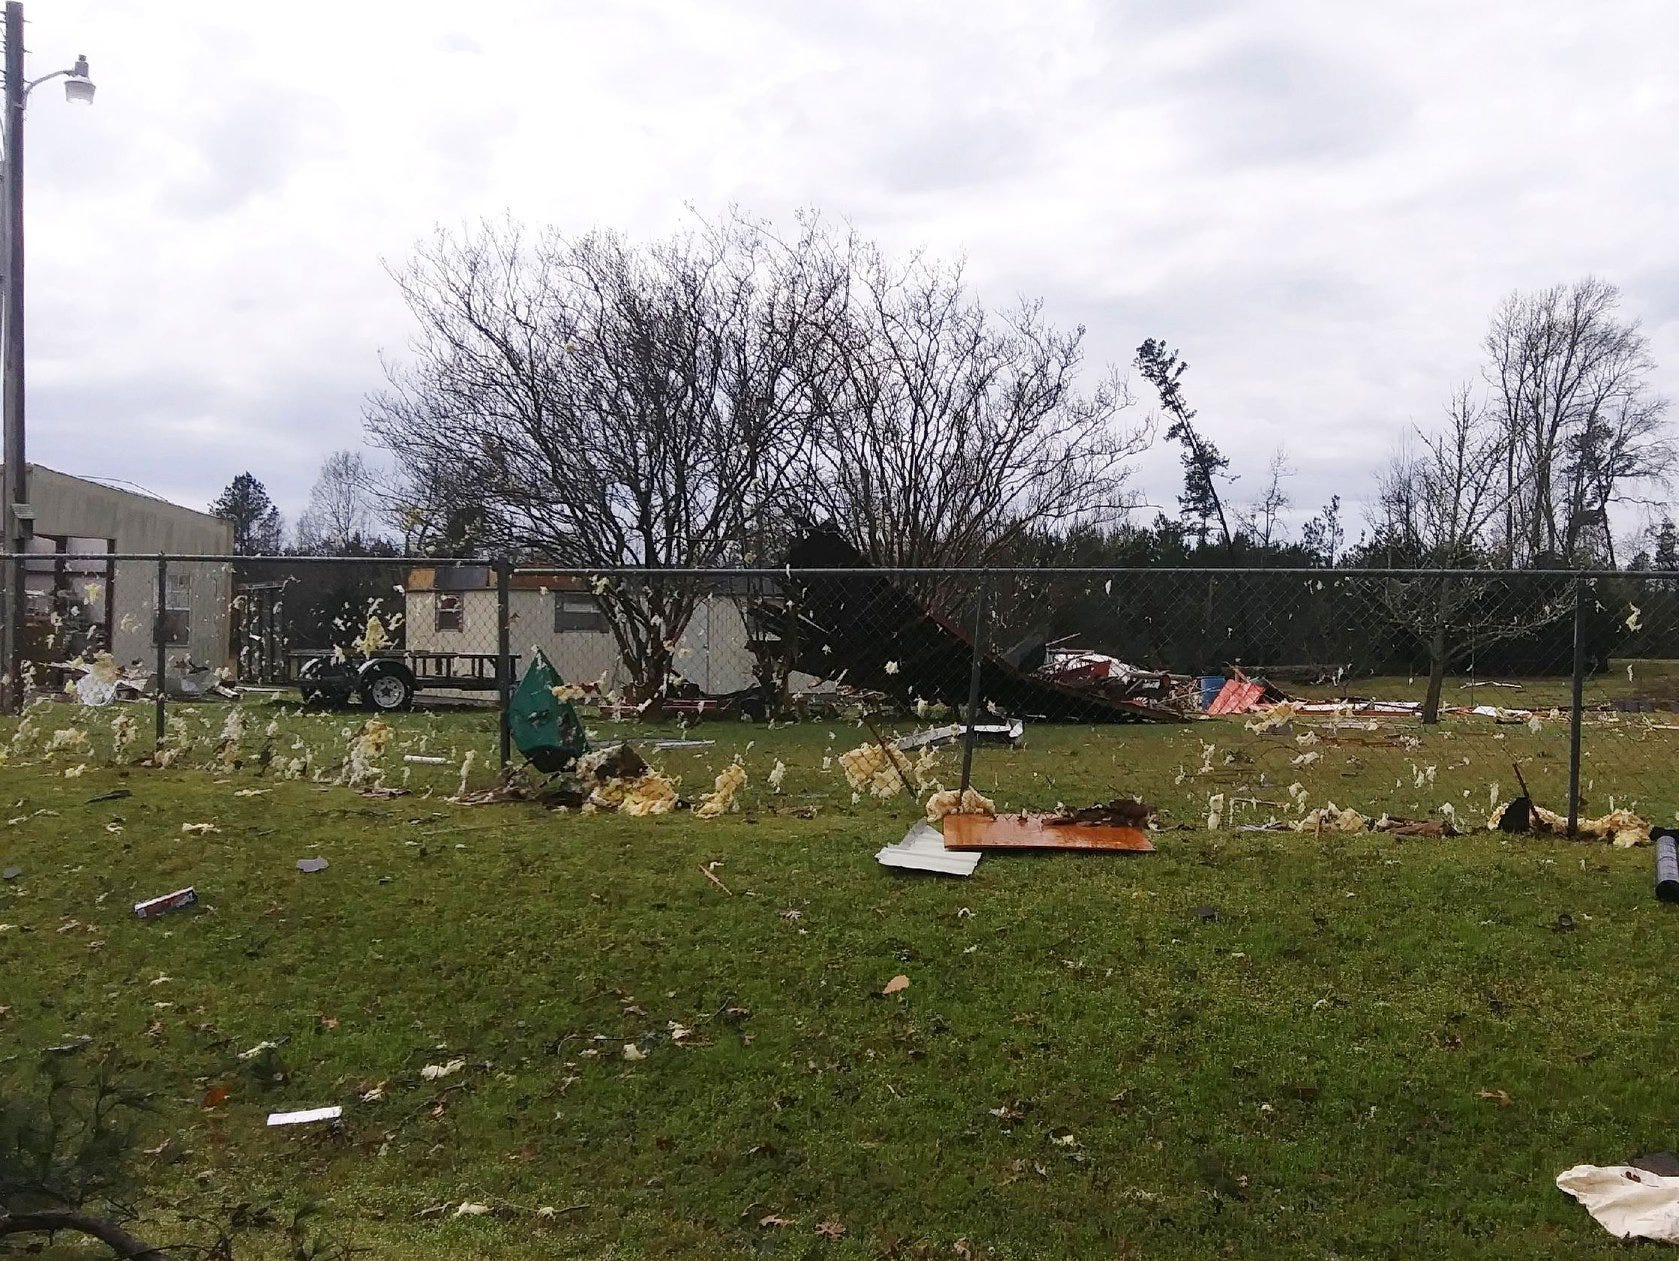 Tornado damage along Highway 157 and Red Land Road in Bossier Parish. Three category EF1 tornadoes were reported to touchdown in Bossier, Caddo and Webster parishes on March 9, 2019.   Photo by